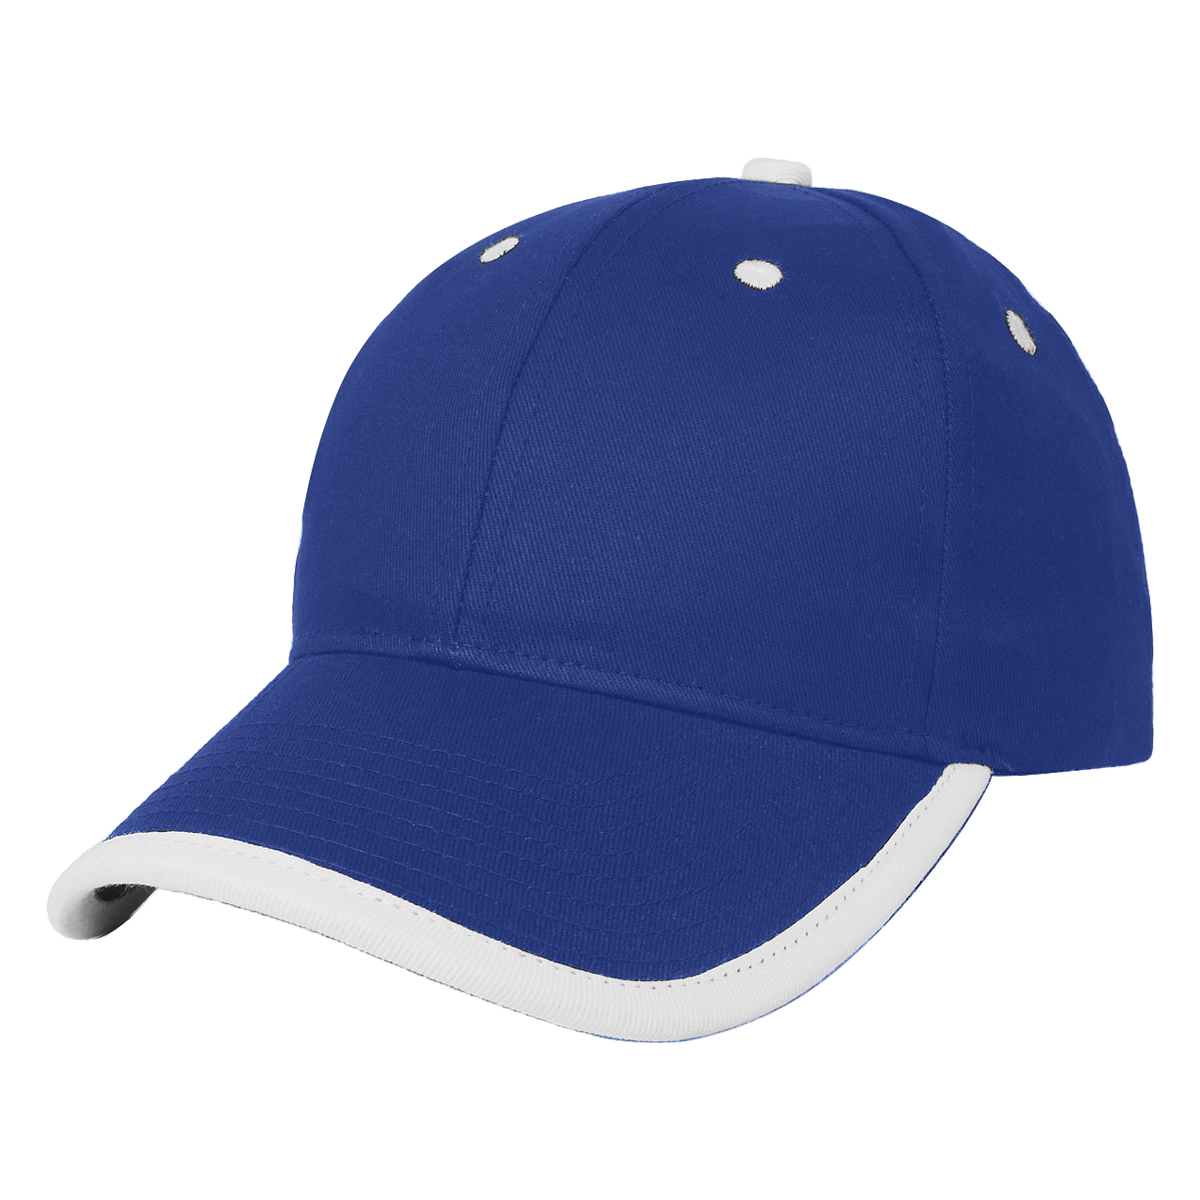 Royal w/ White Accents Price Buster Cap with Visor Trim